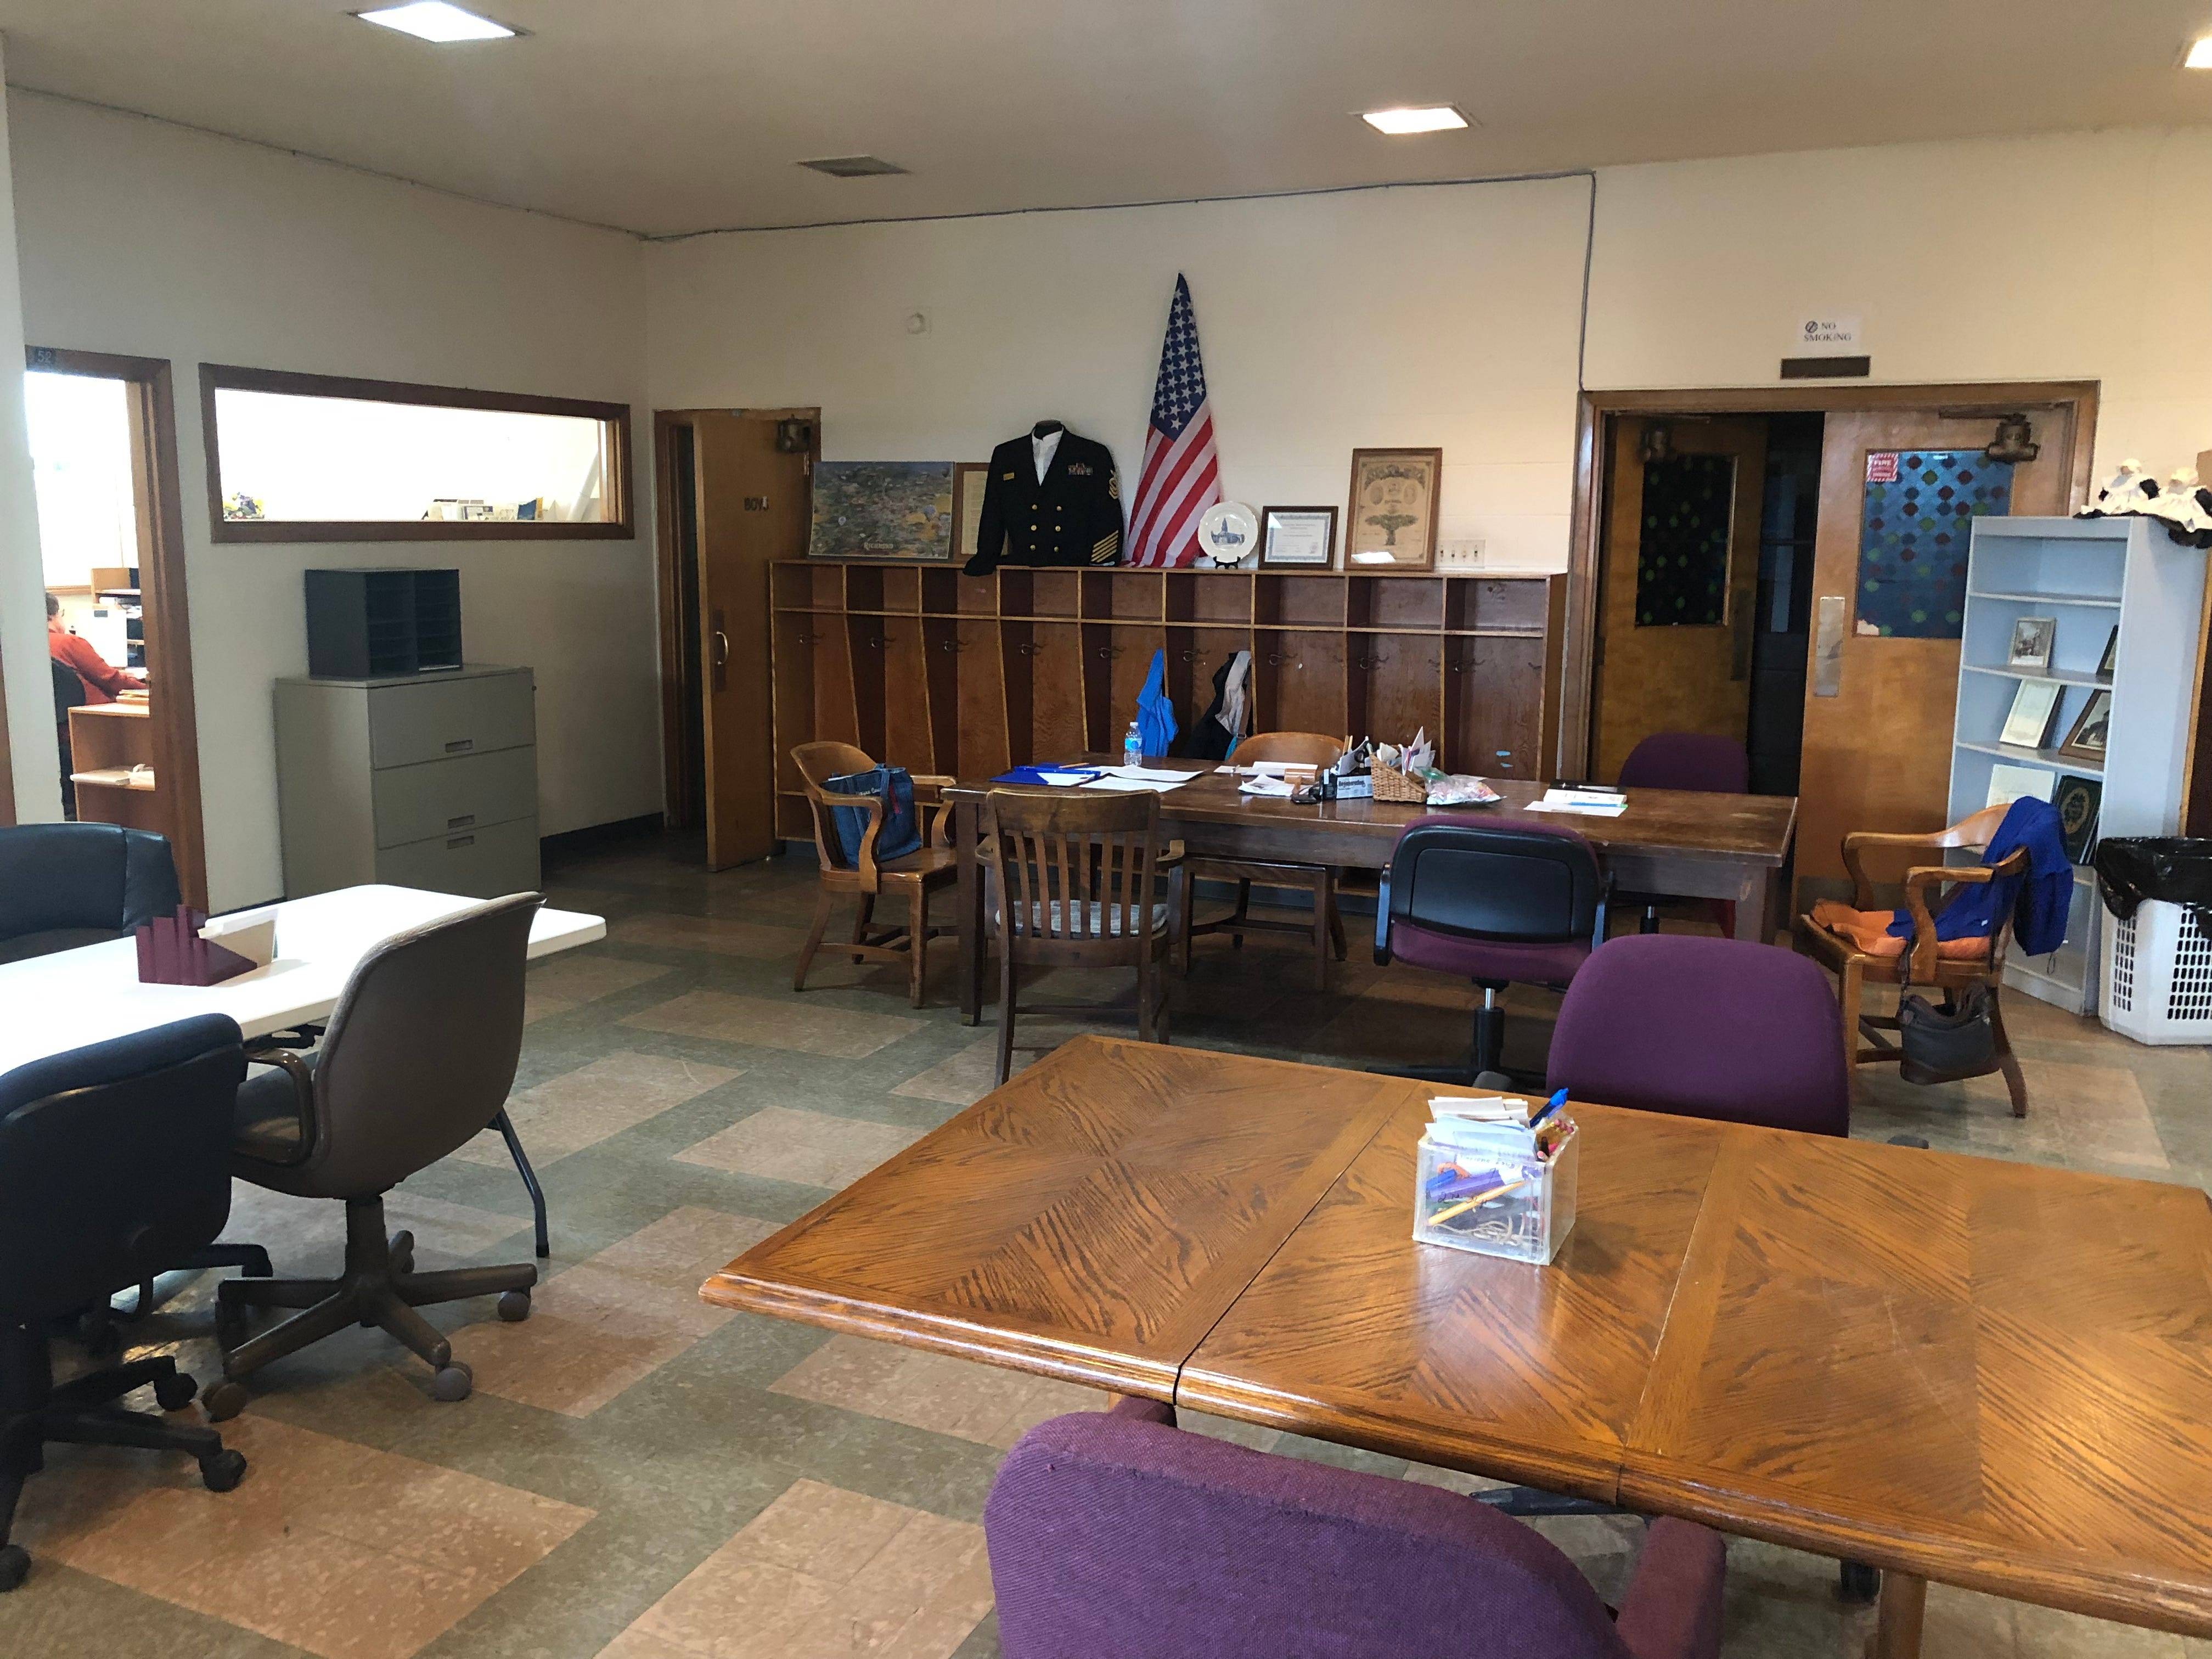 This space in the basement of St. John Lutheran Church is the current home for the Wayne County Genealogical Society, but the nonprofit needs to find a new home.